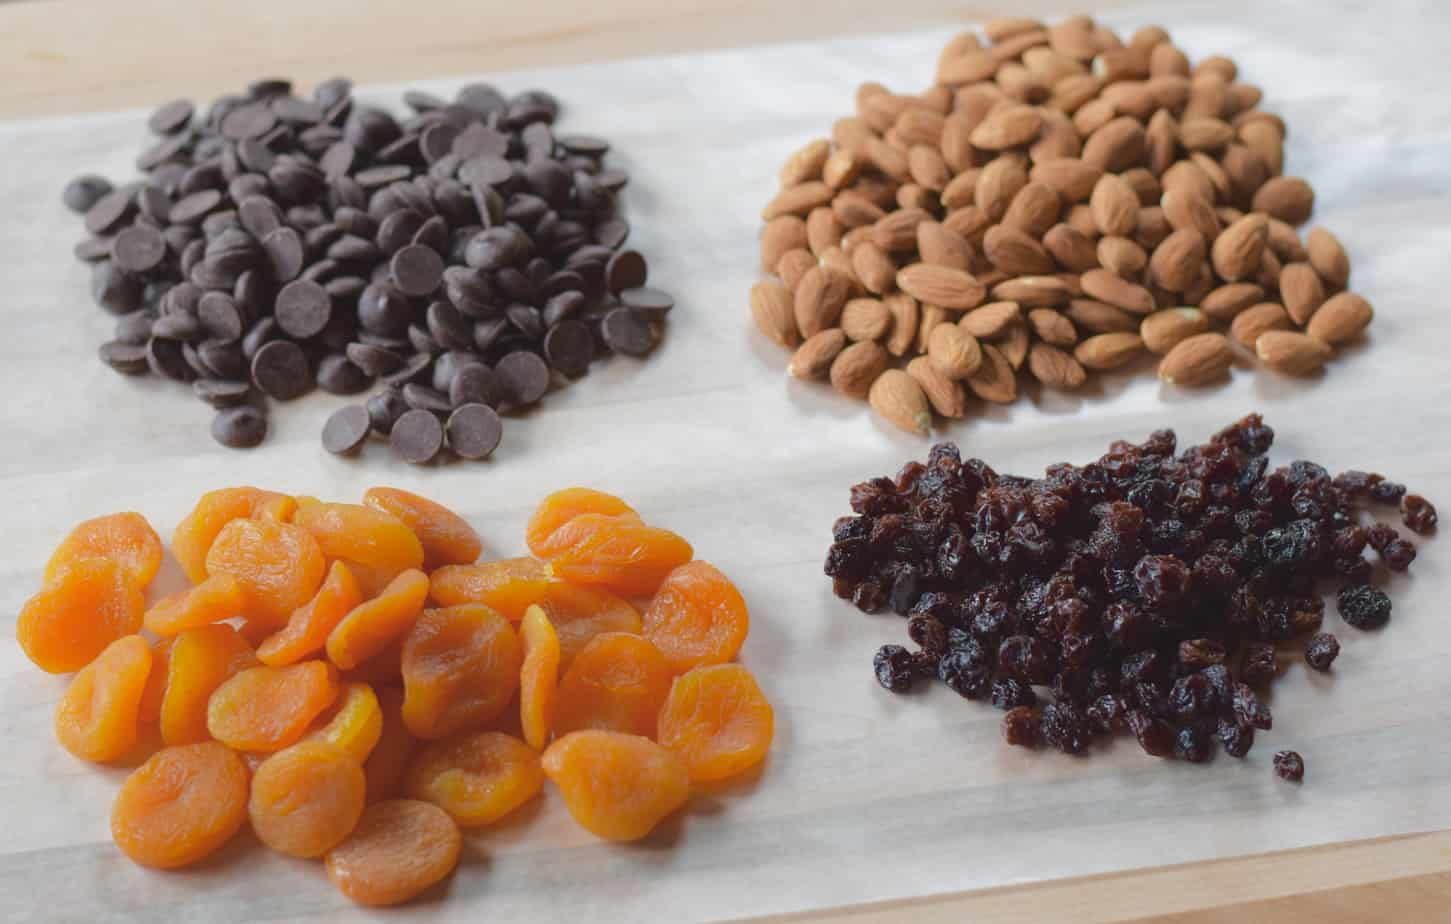 chocolate chips, almonds, raisins, dried apricots